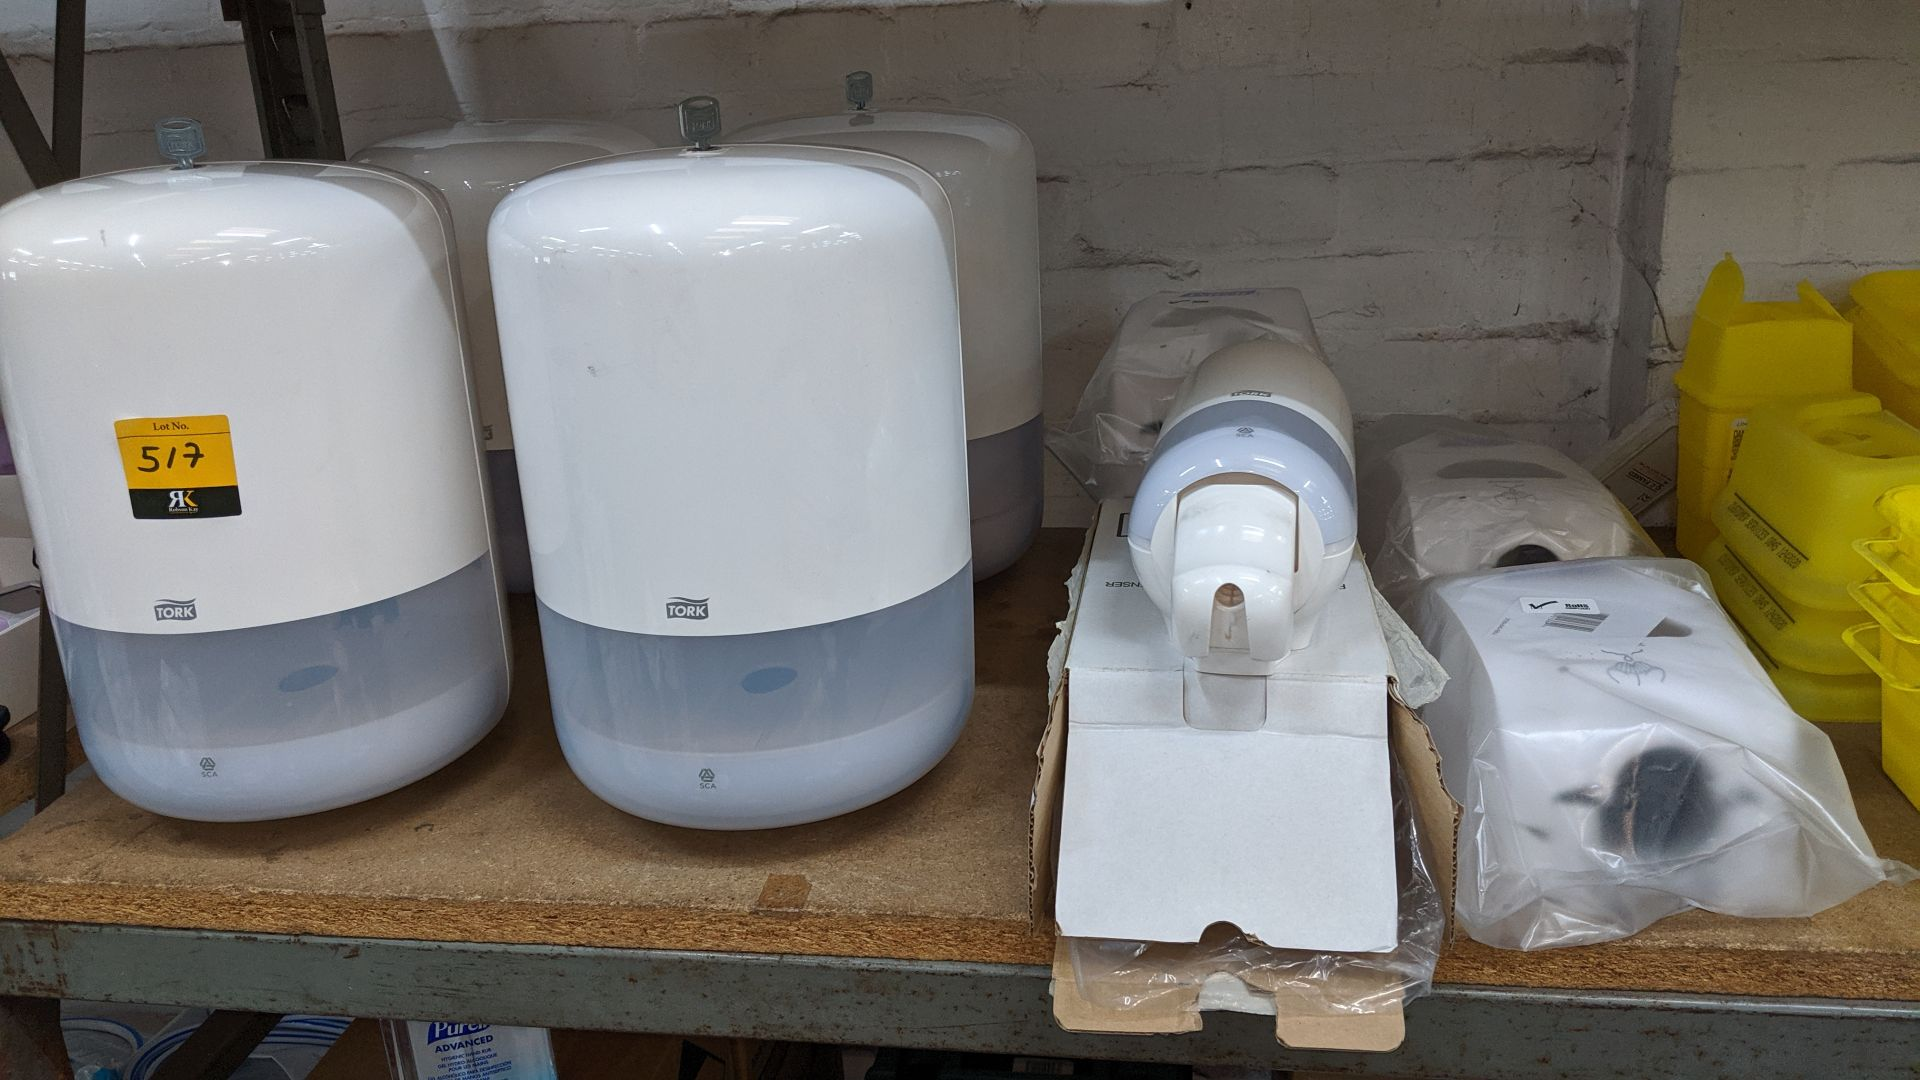 Lot 517 - 10 off Tork assorted towel & soap dispensers. This is one of a large number of lots used/owned by